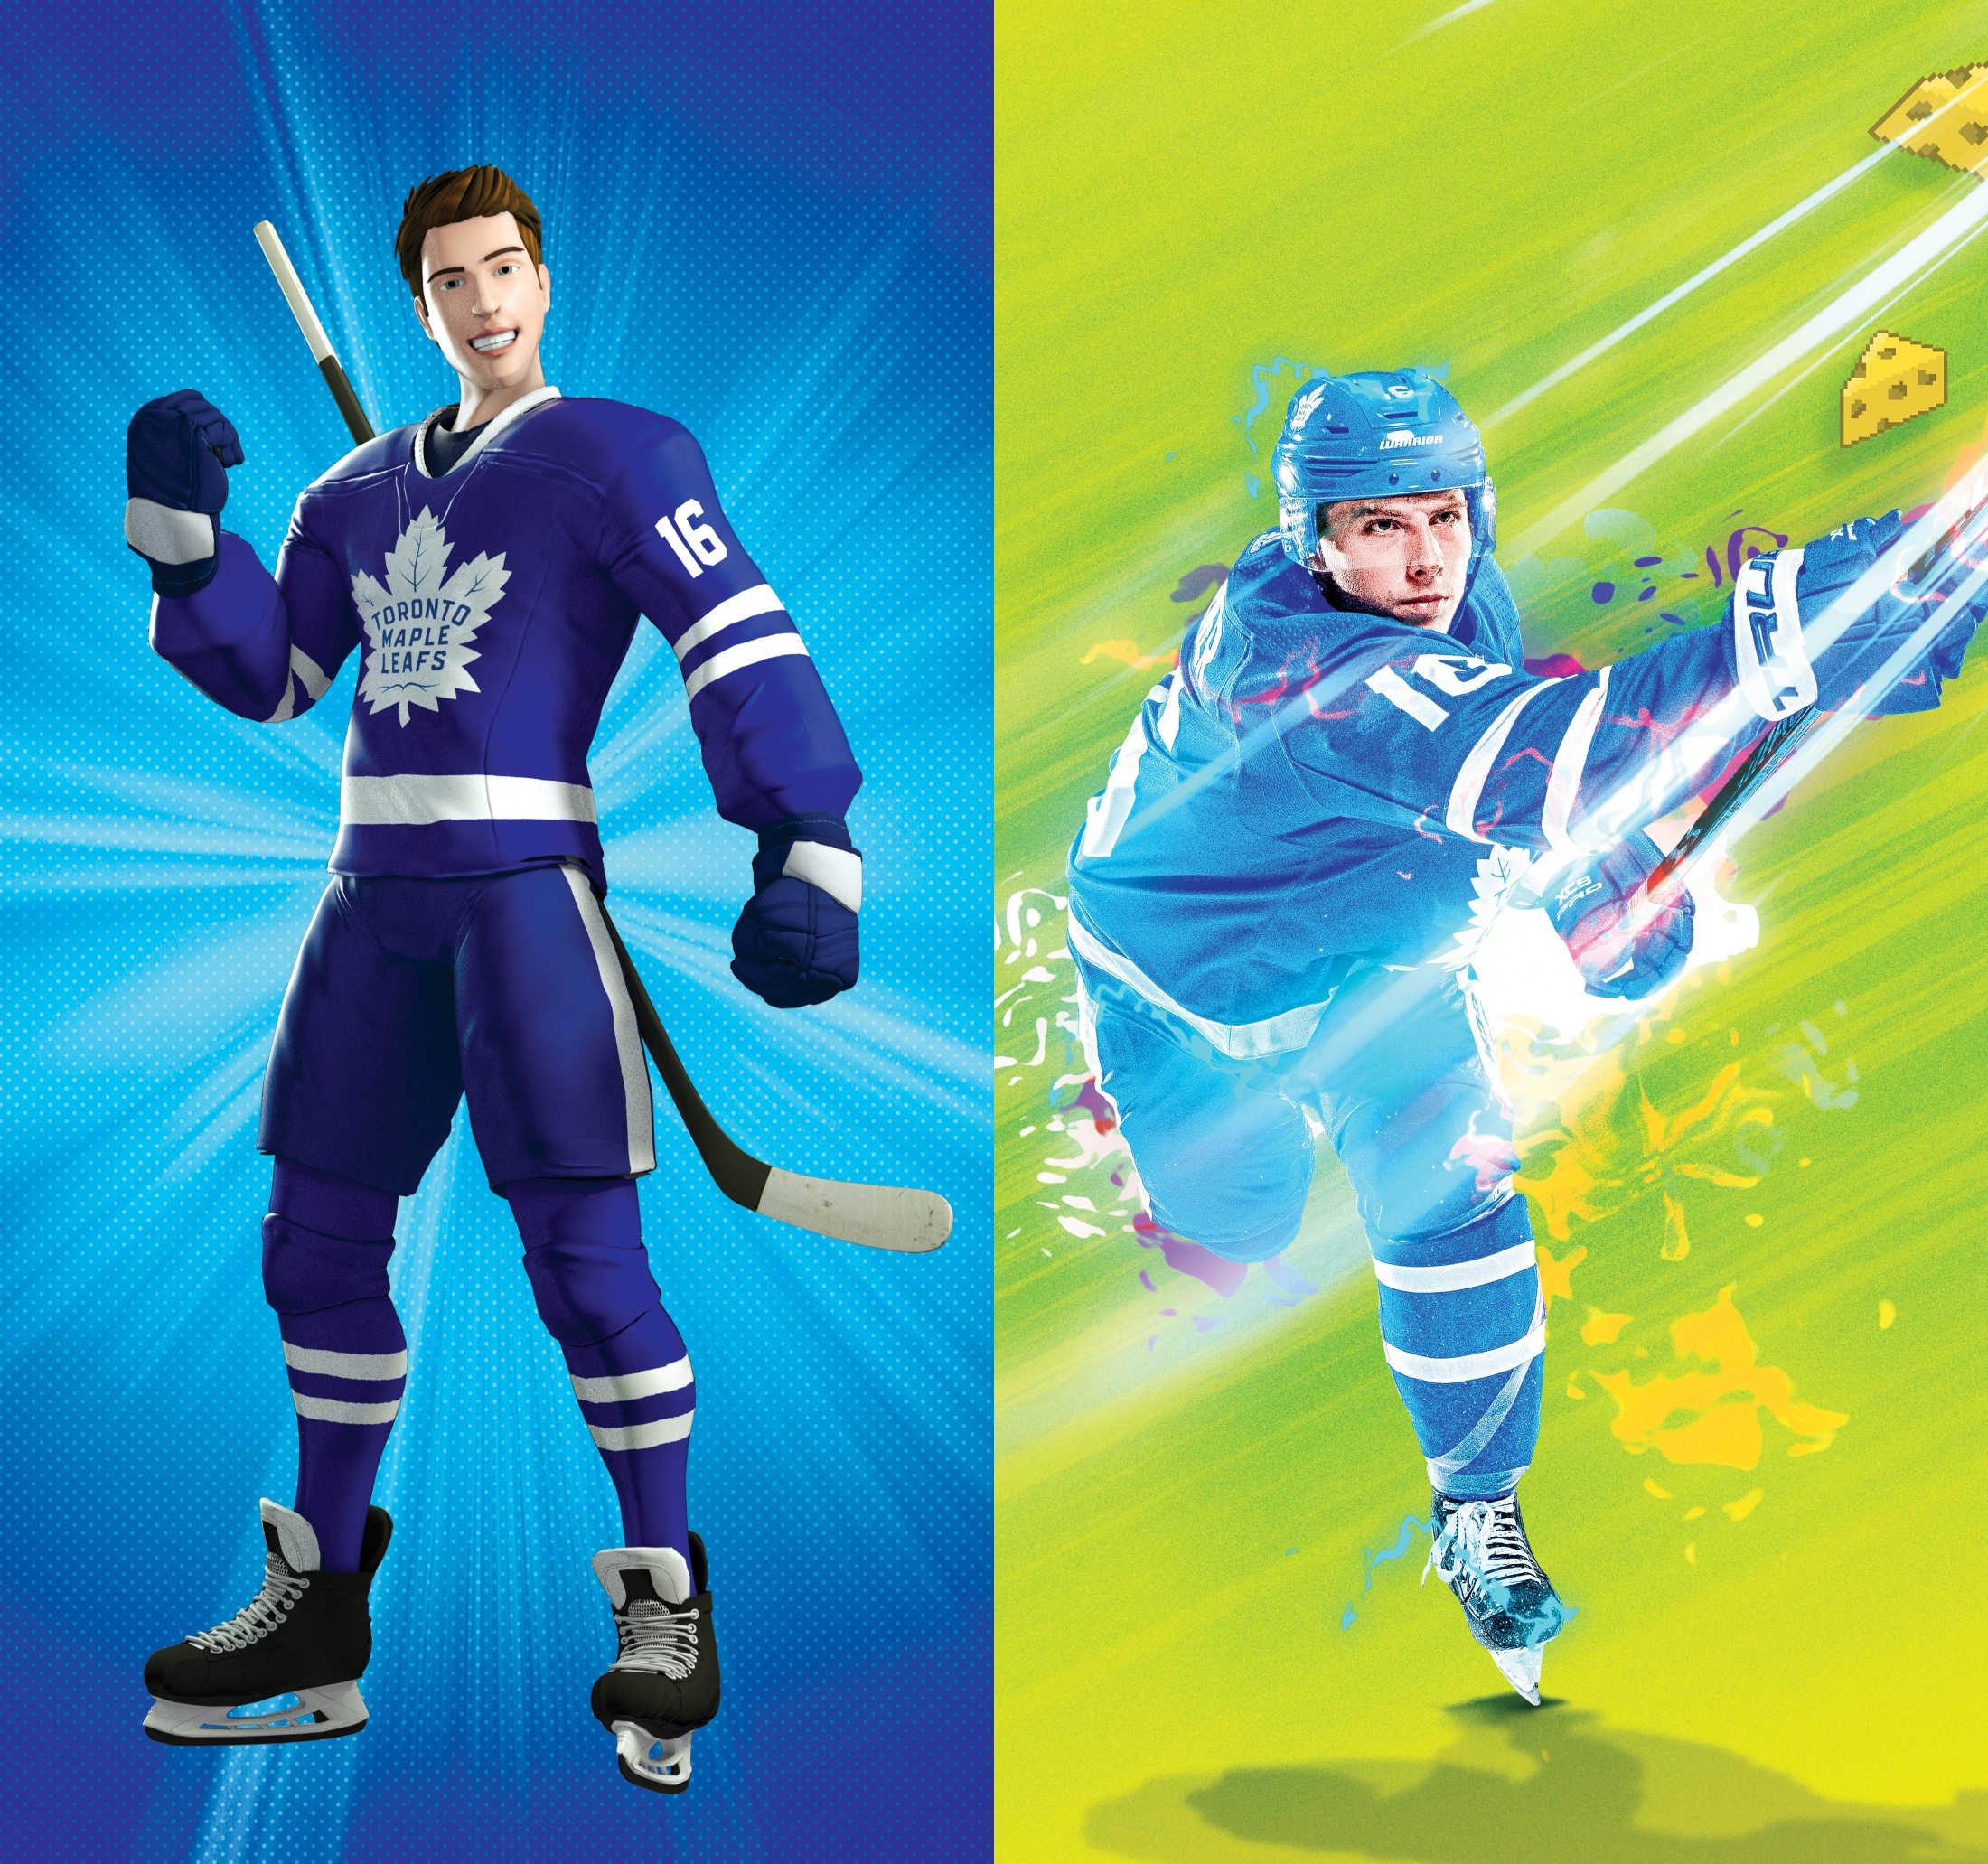 Image Media for Toronto Maple Leafs - Next Gen Game